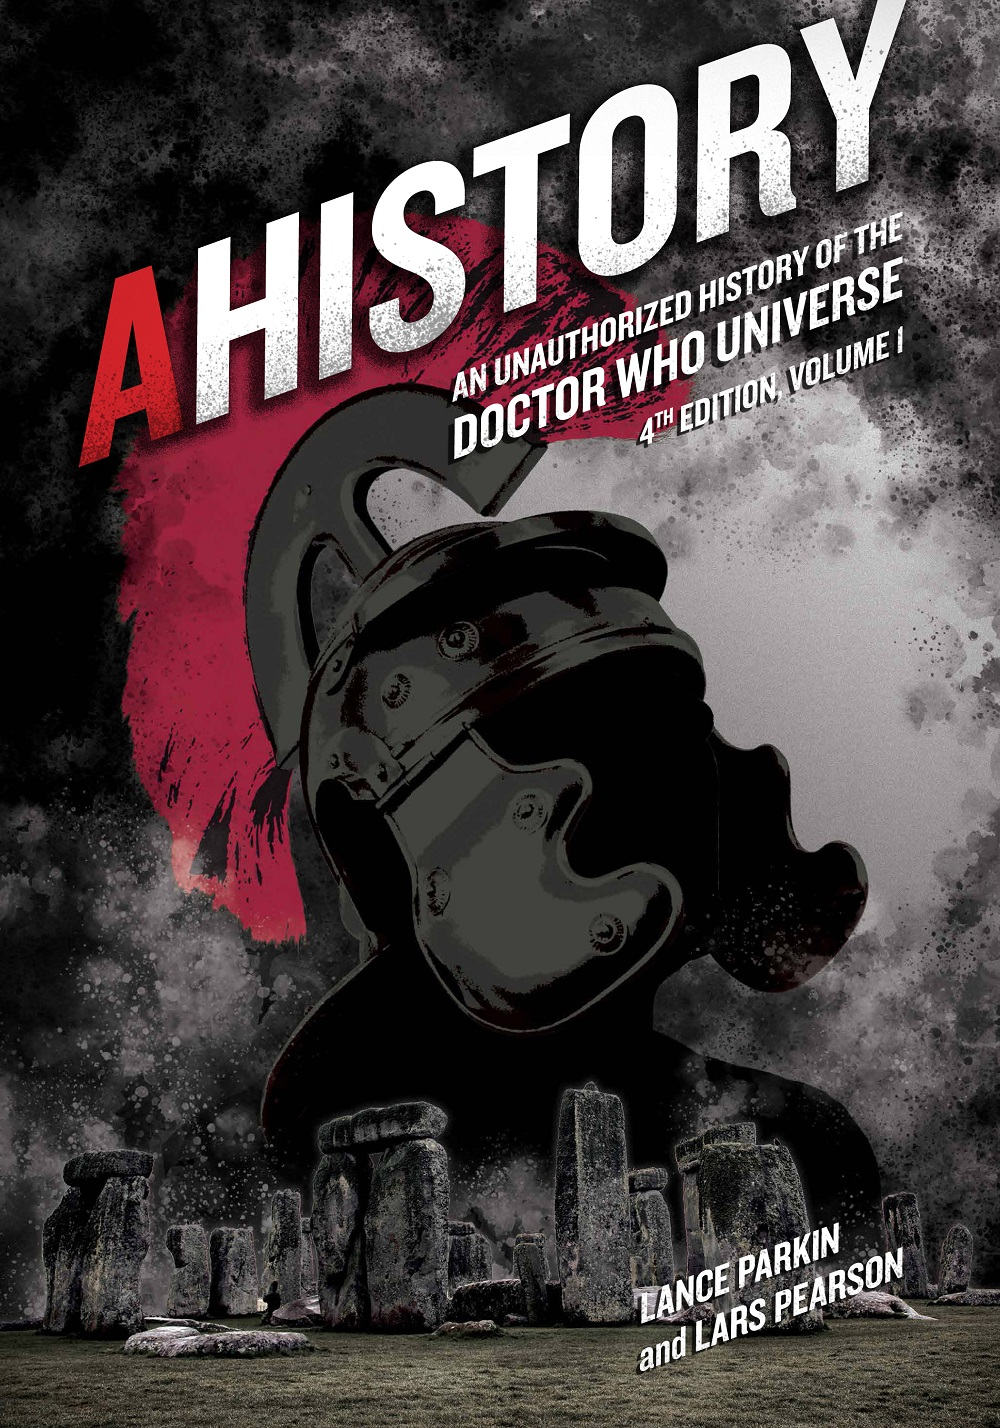 AHistory:An Unauthorized History of the Doctor Who Universe (Fourth Edition Vol. 1)